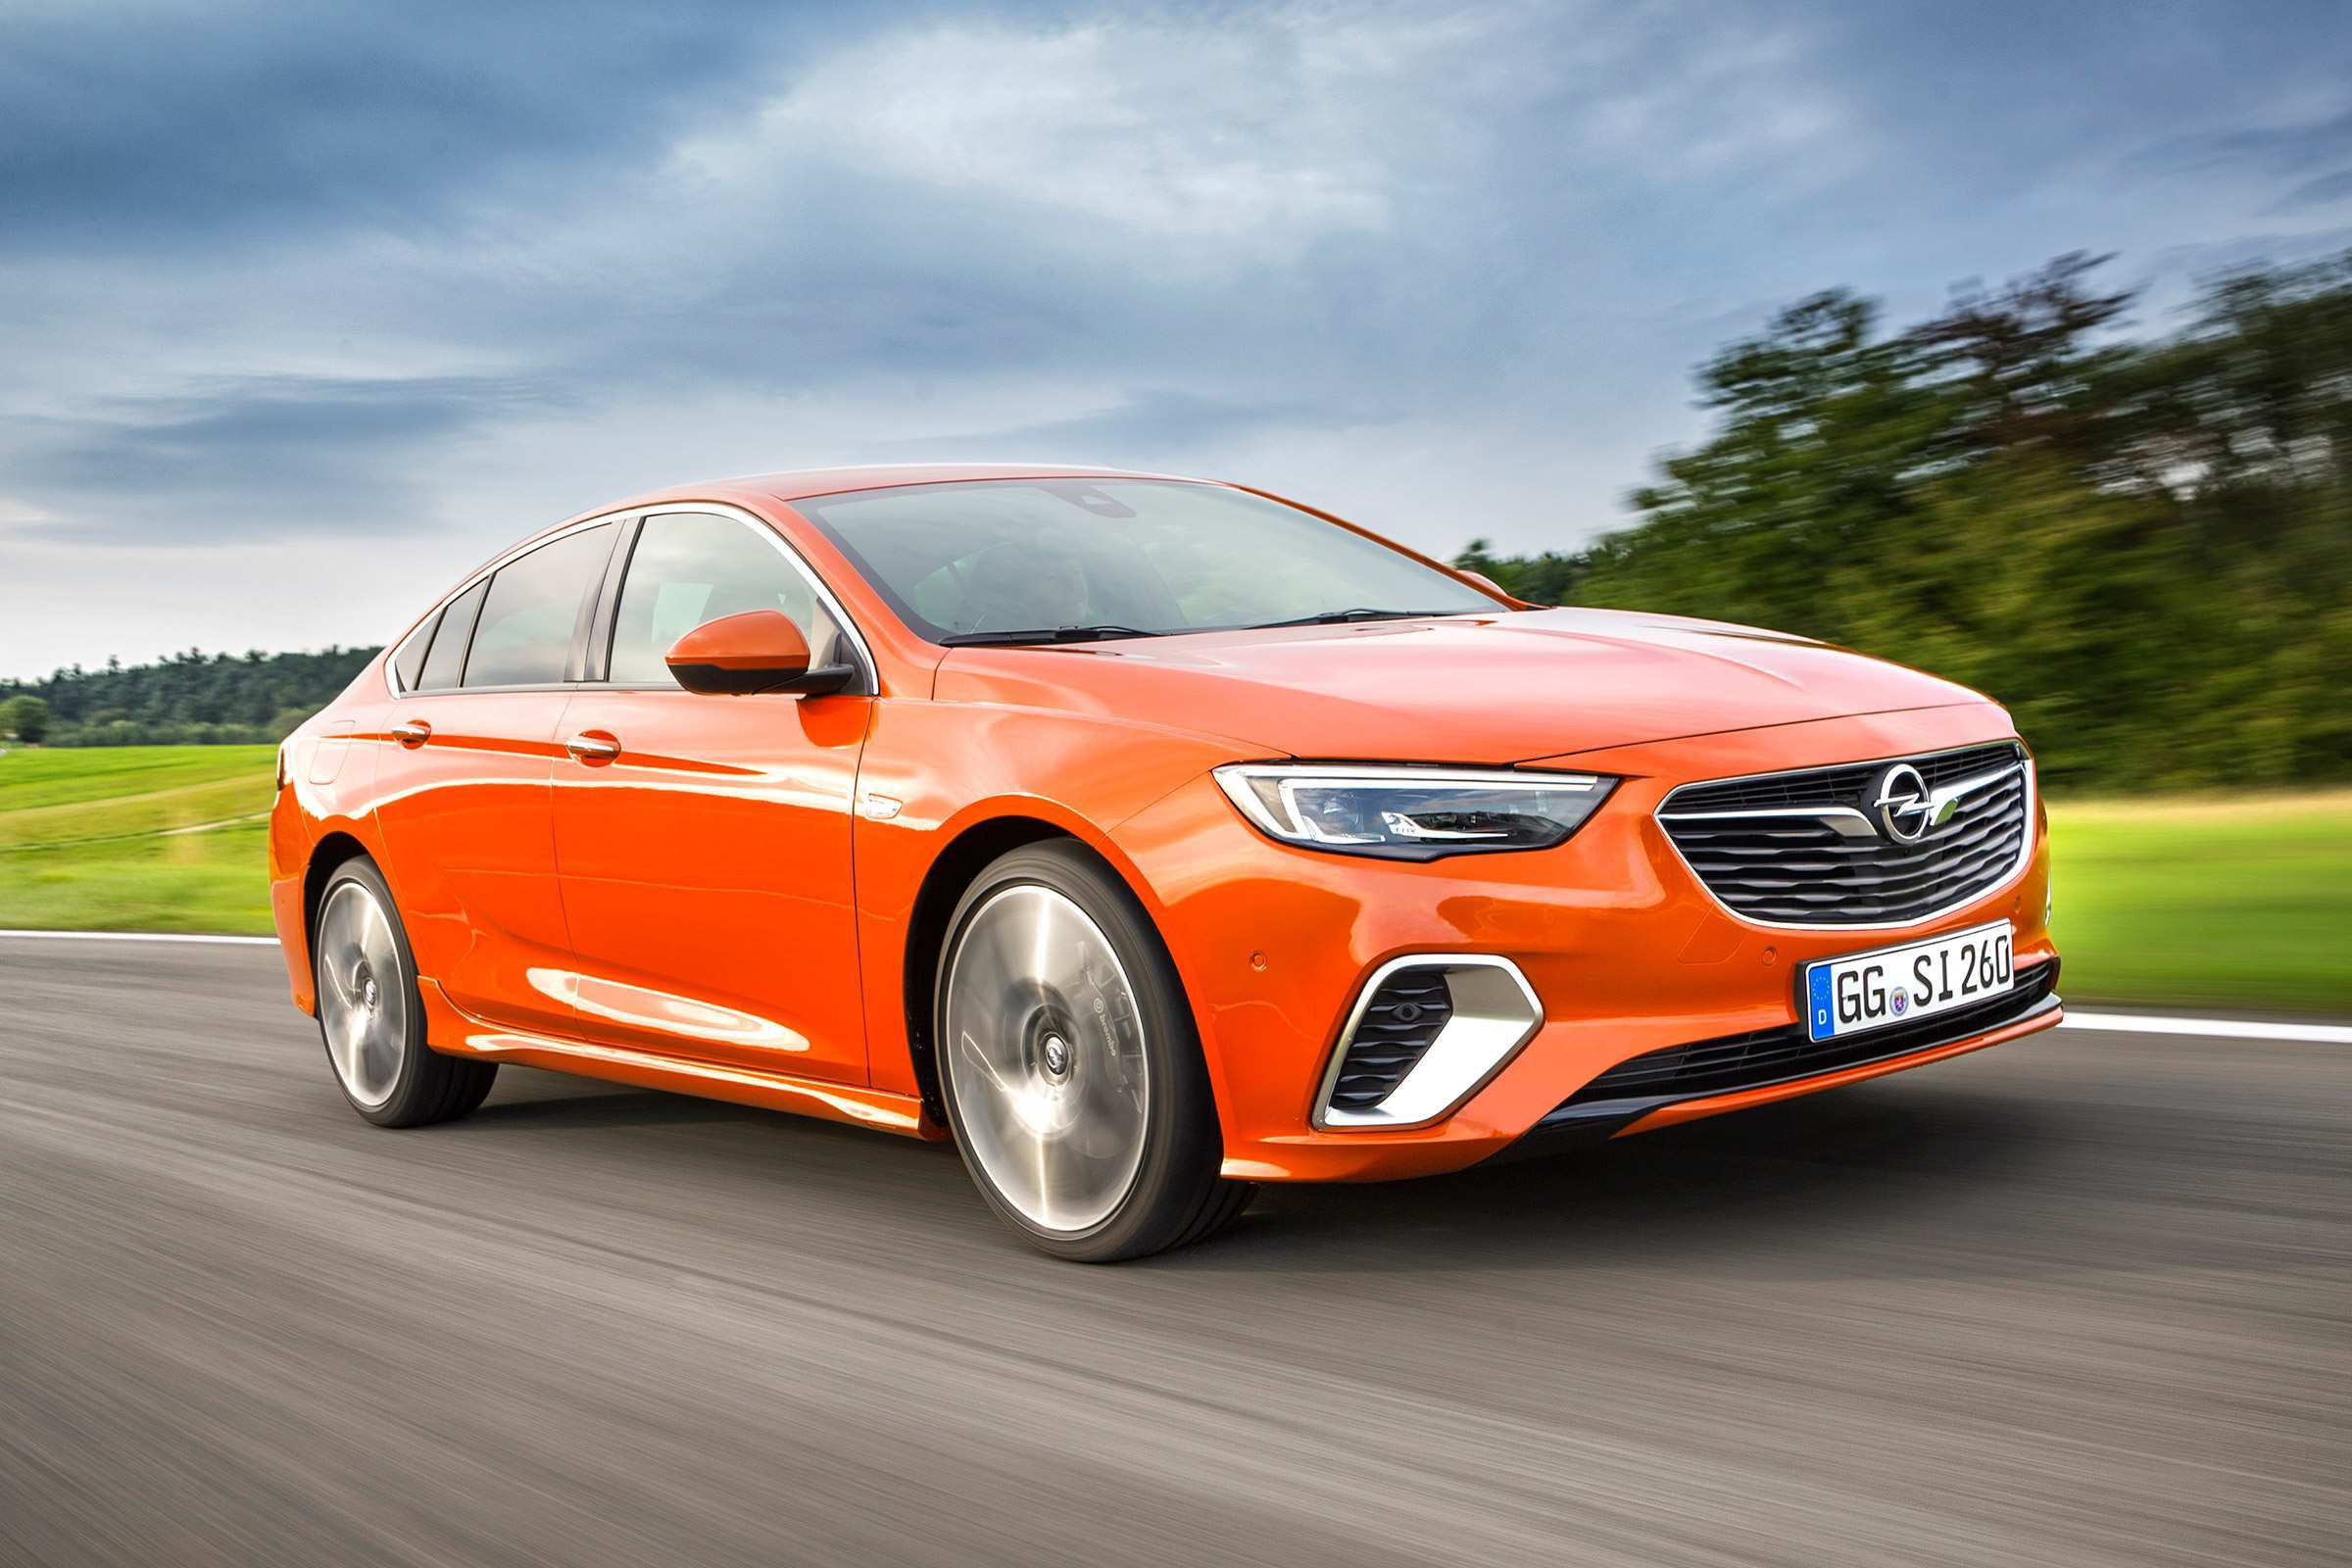 47 All New Opel Insignia Grand Sport 2020 Photos by Opel Insignia Grand Sport 2020